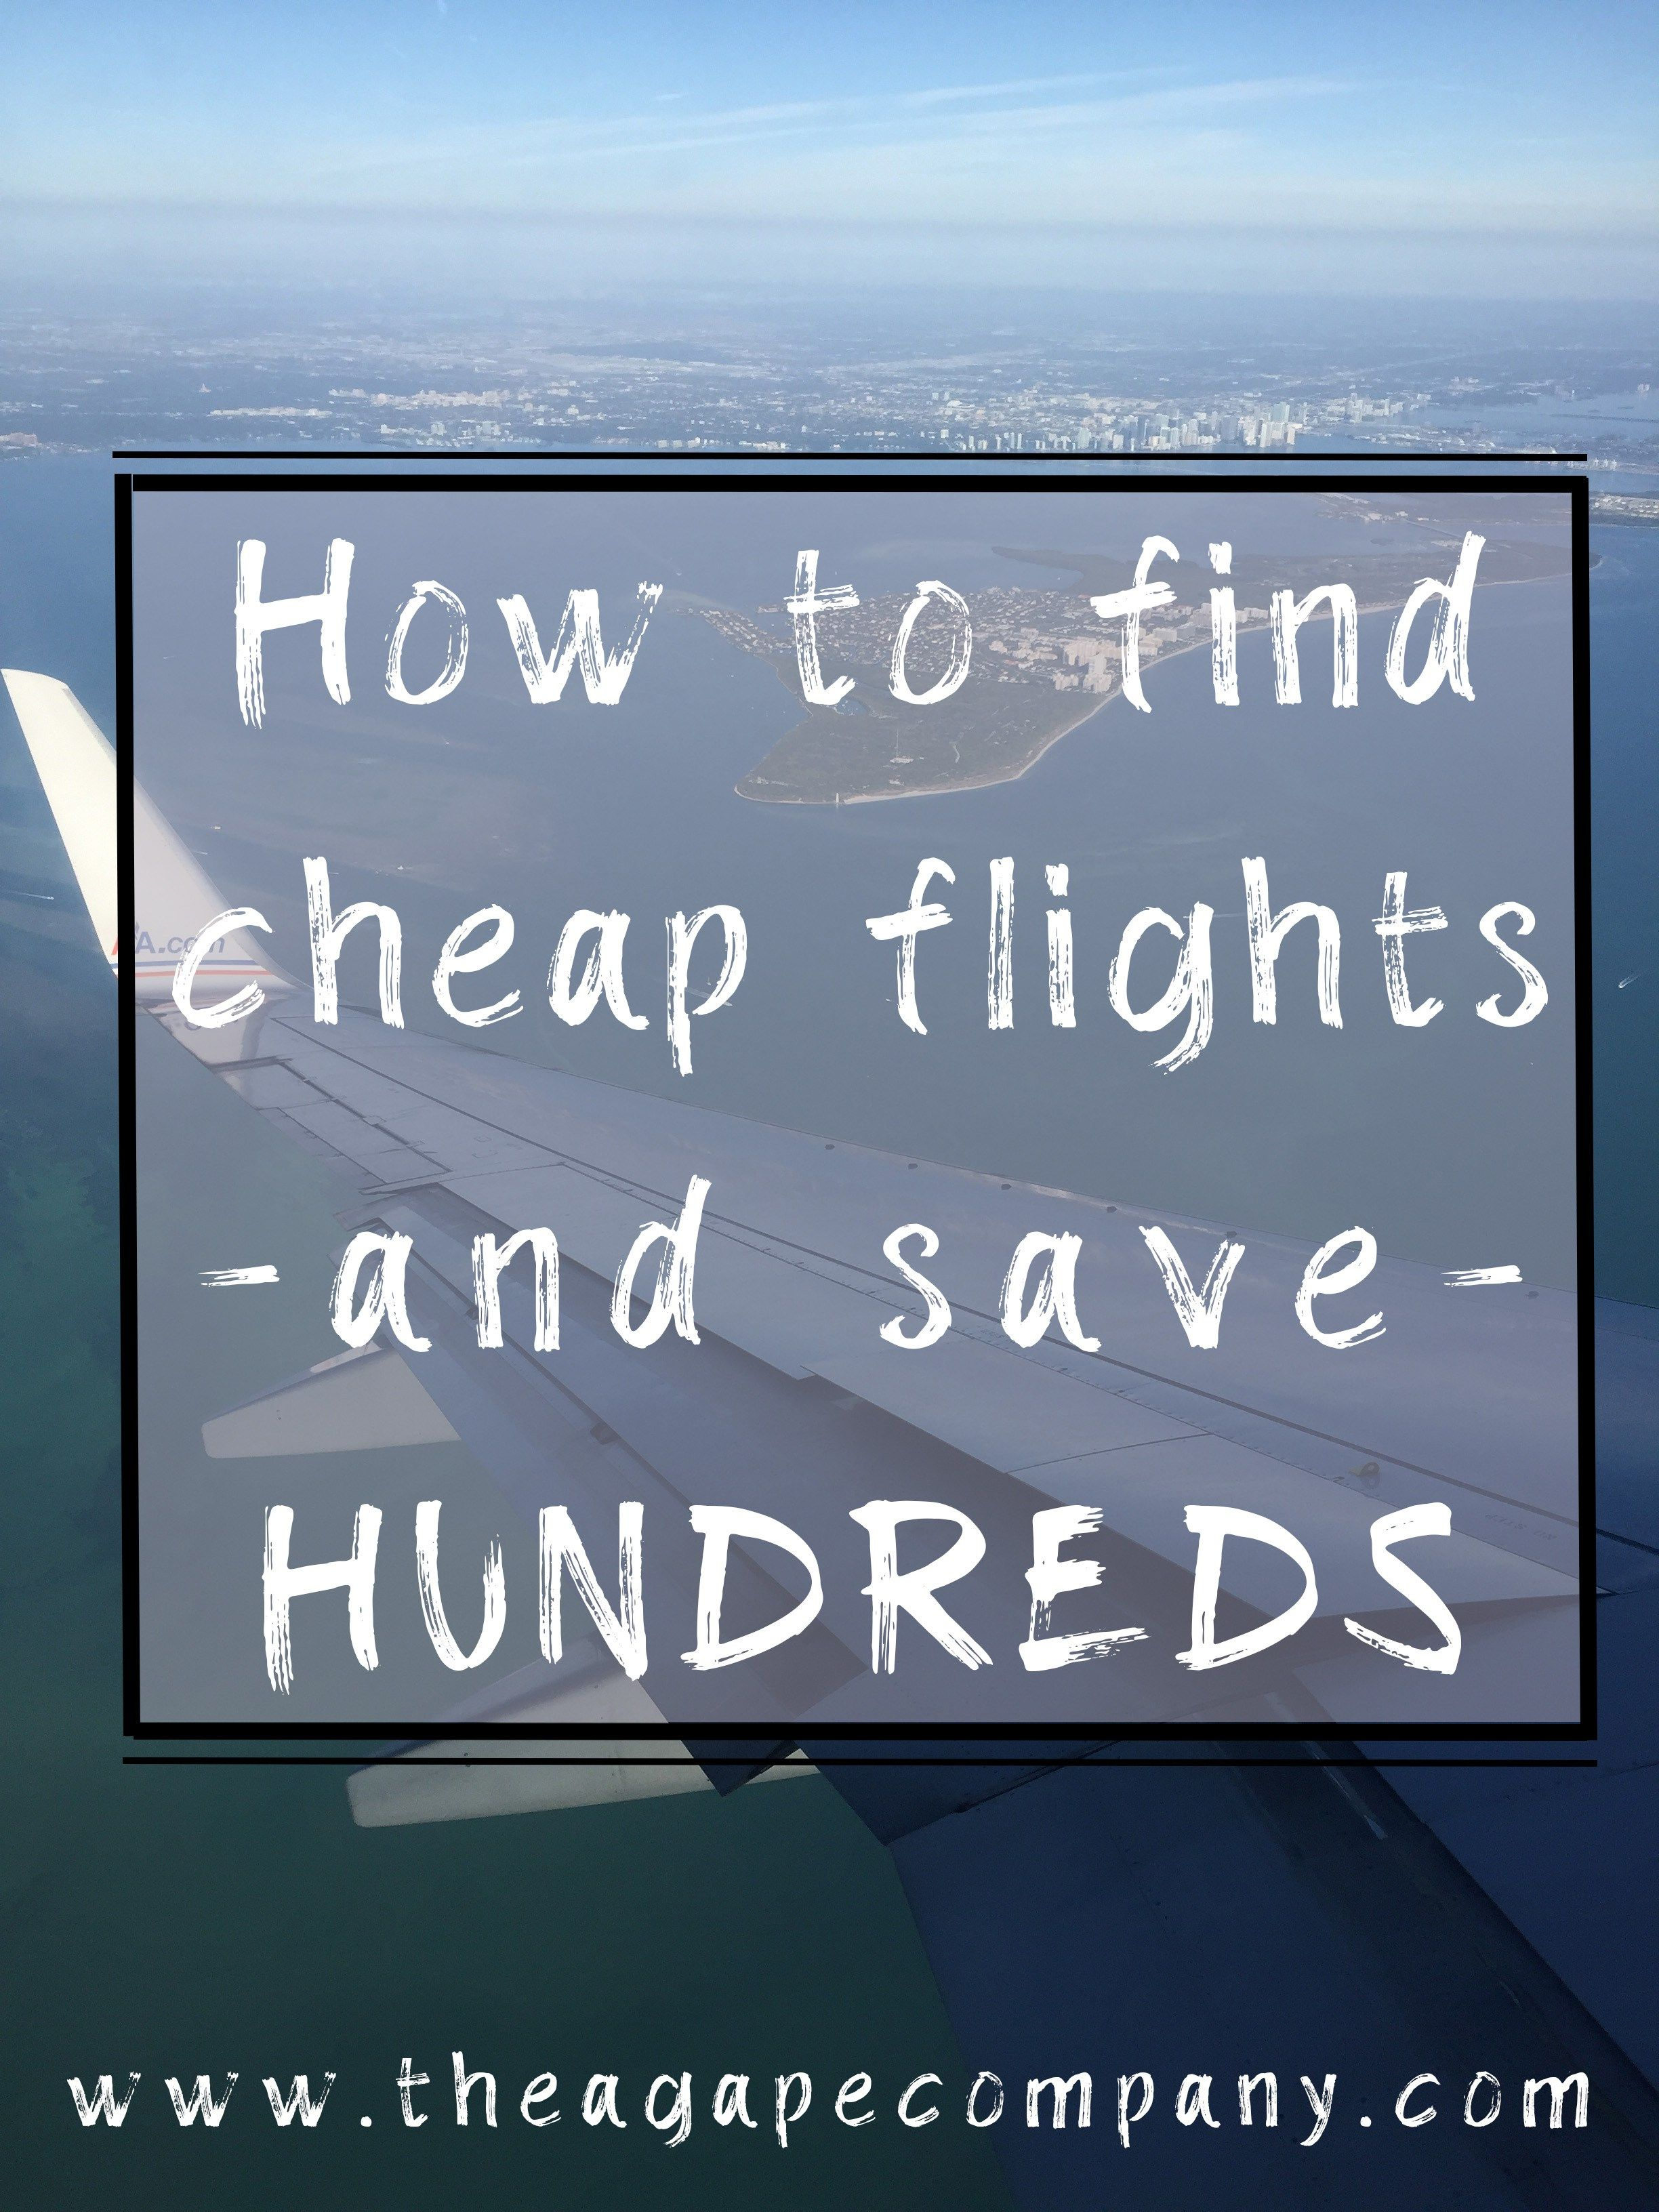 Looking to find cheap flights to save you thousands? Check out or travel guides full of tips and tricks to find you cheap airfare deals. These budget travel tips have helped us save money, explore the world, and find cheap flights anywhere! www.theagapecompany.com #cheapflights #airfaredeals